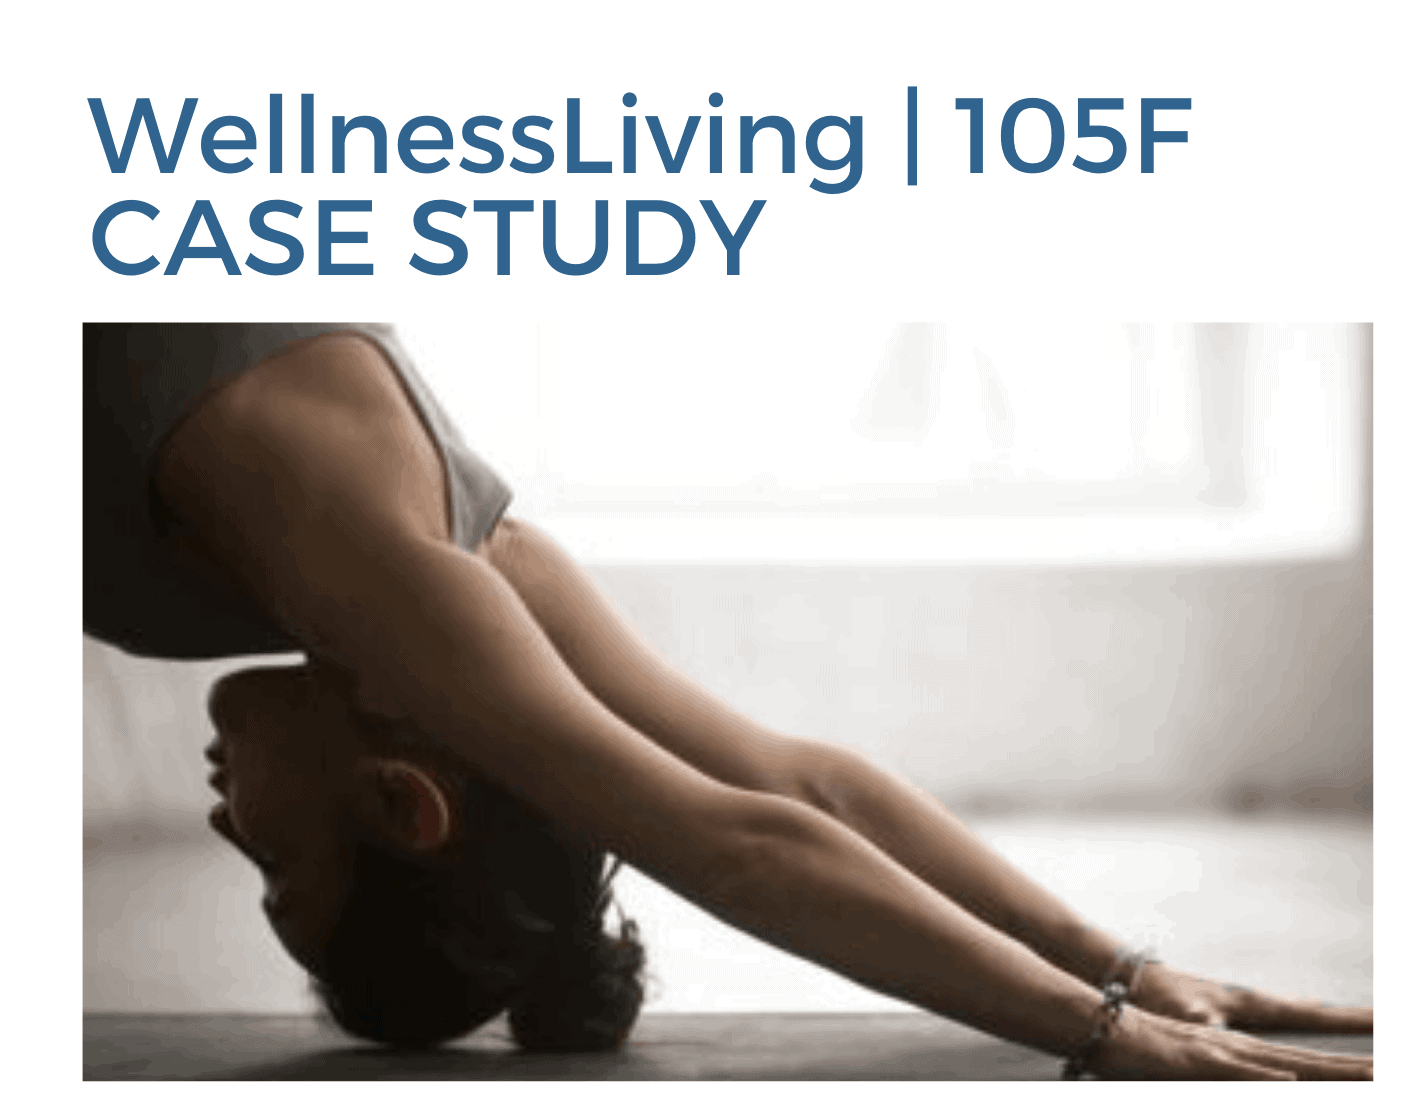 WellnessLiving I don't feel like a number